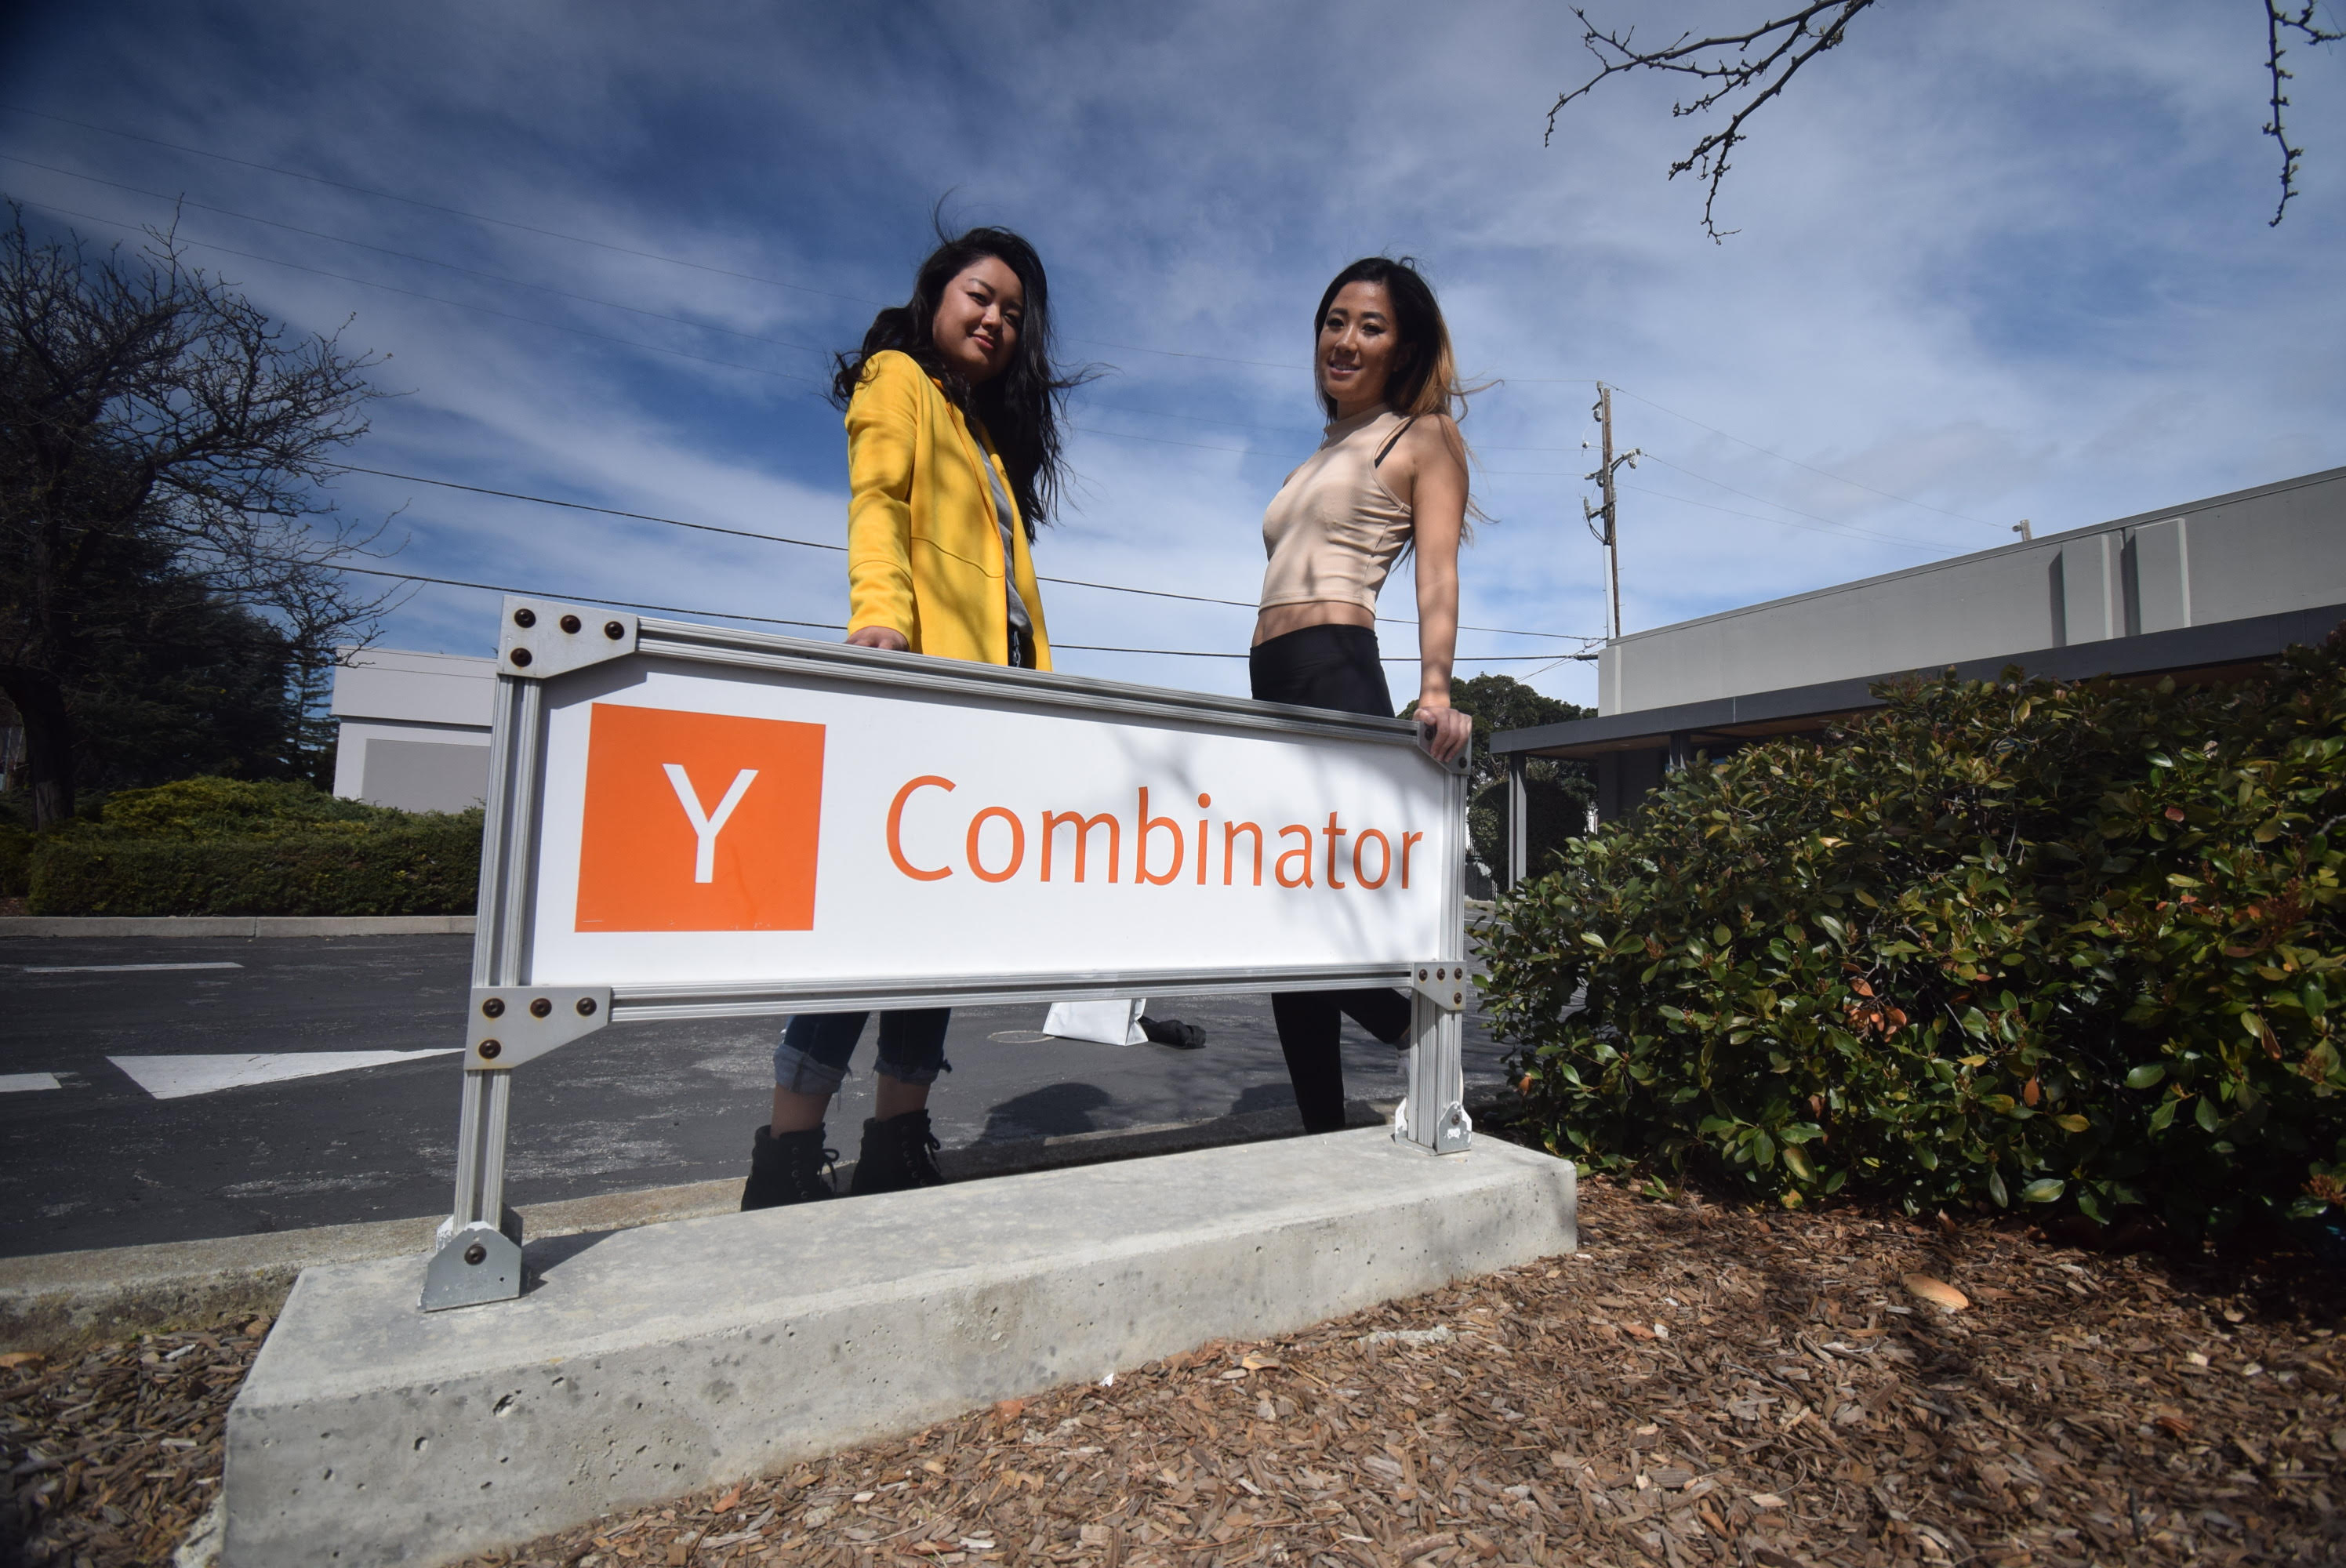 Quadrant Eye co-founders Quinn and Kristine at the infamous YC sign in Mountain View, California.